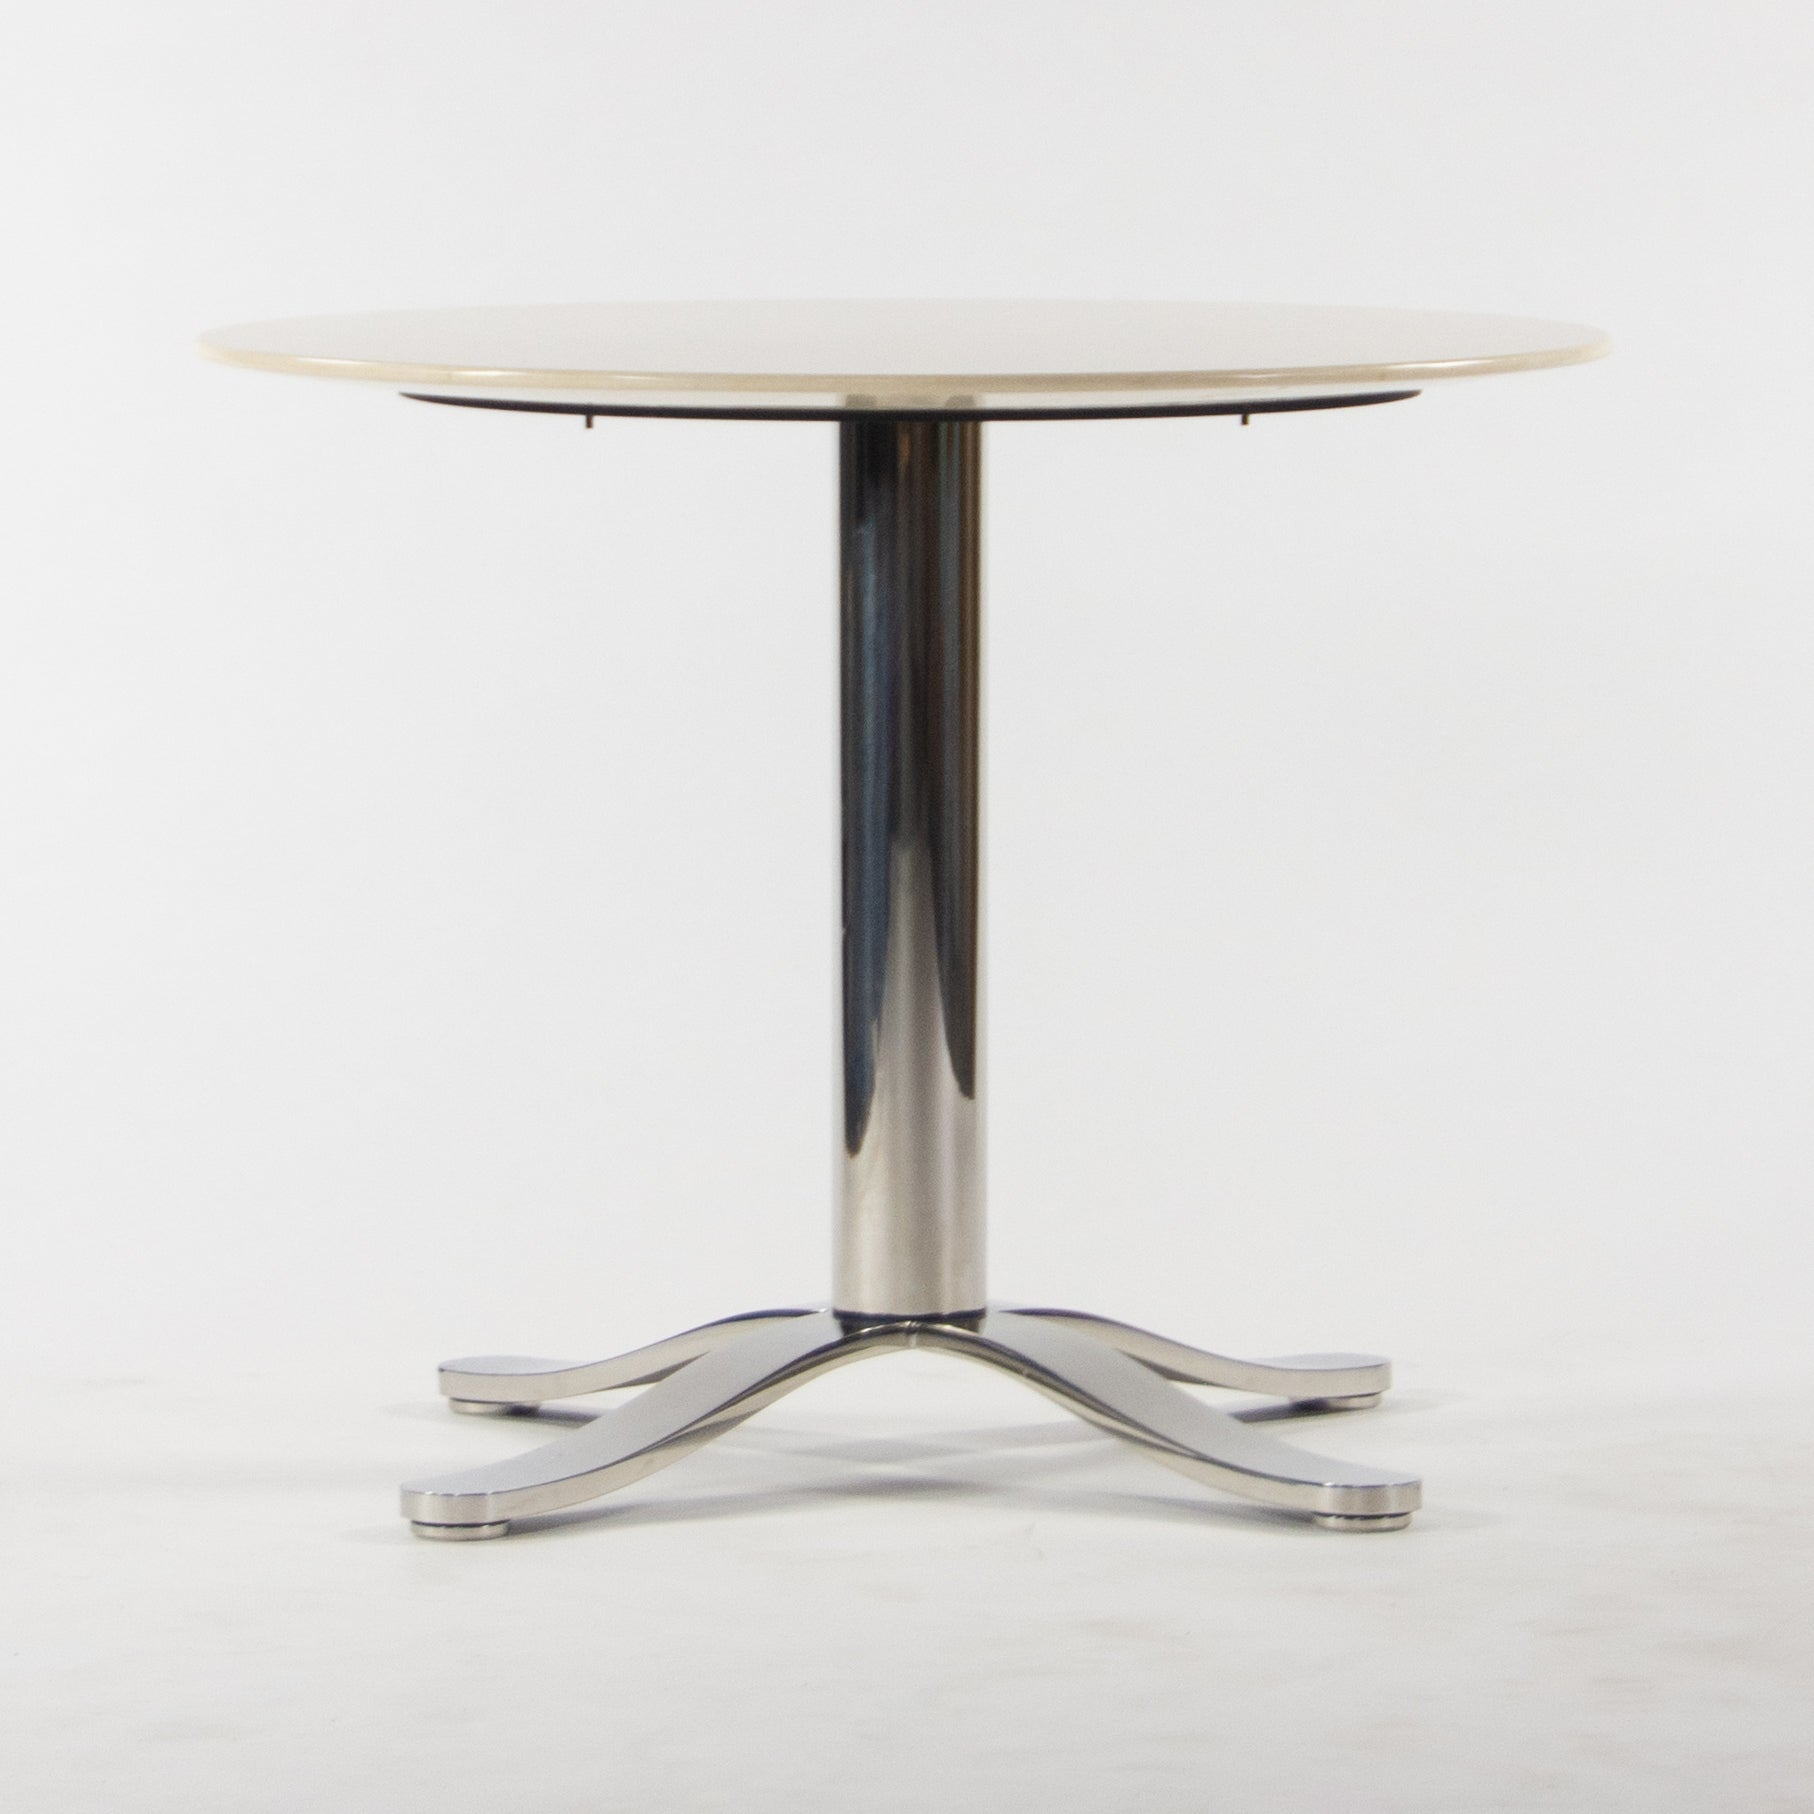 Nicos Zographos Beige Marble Round Meeting Cafe Office Table